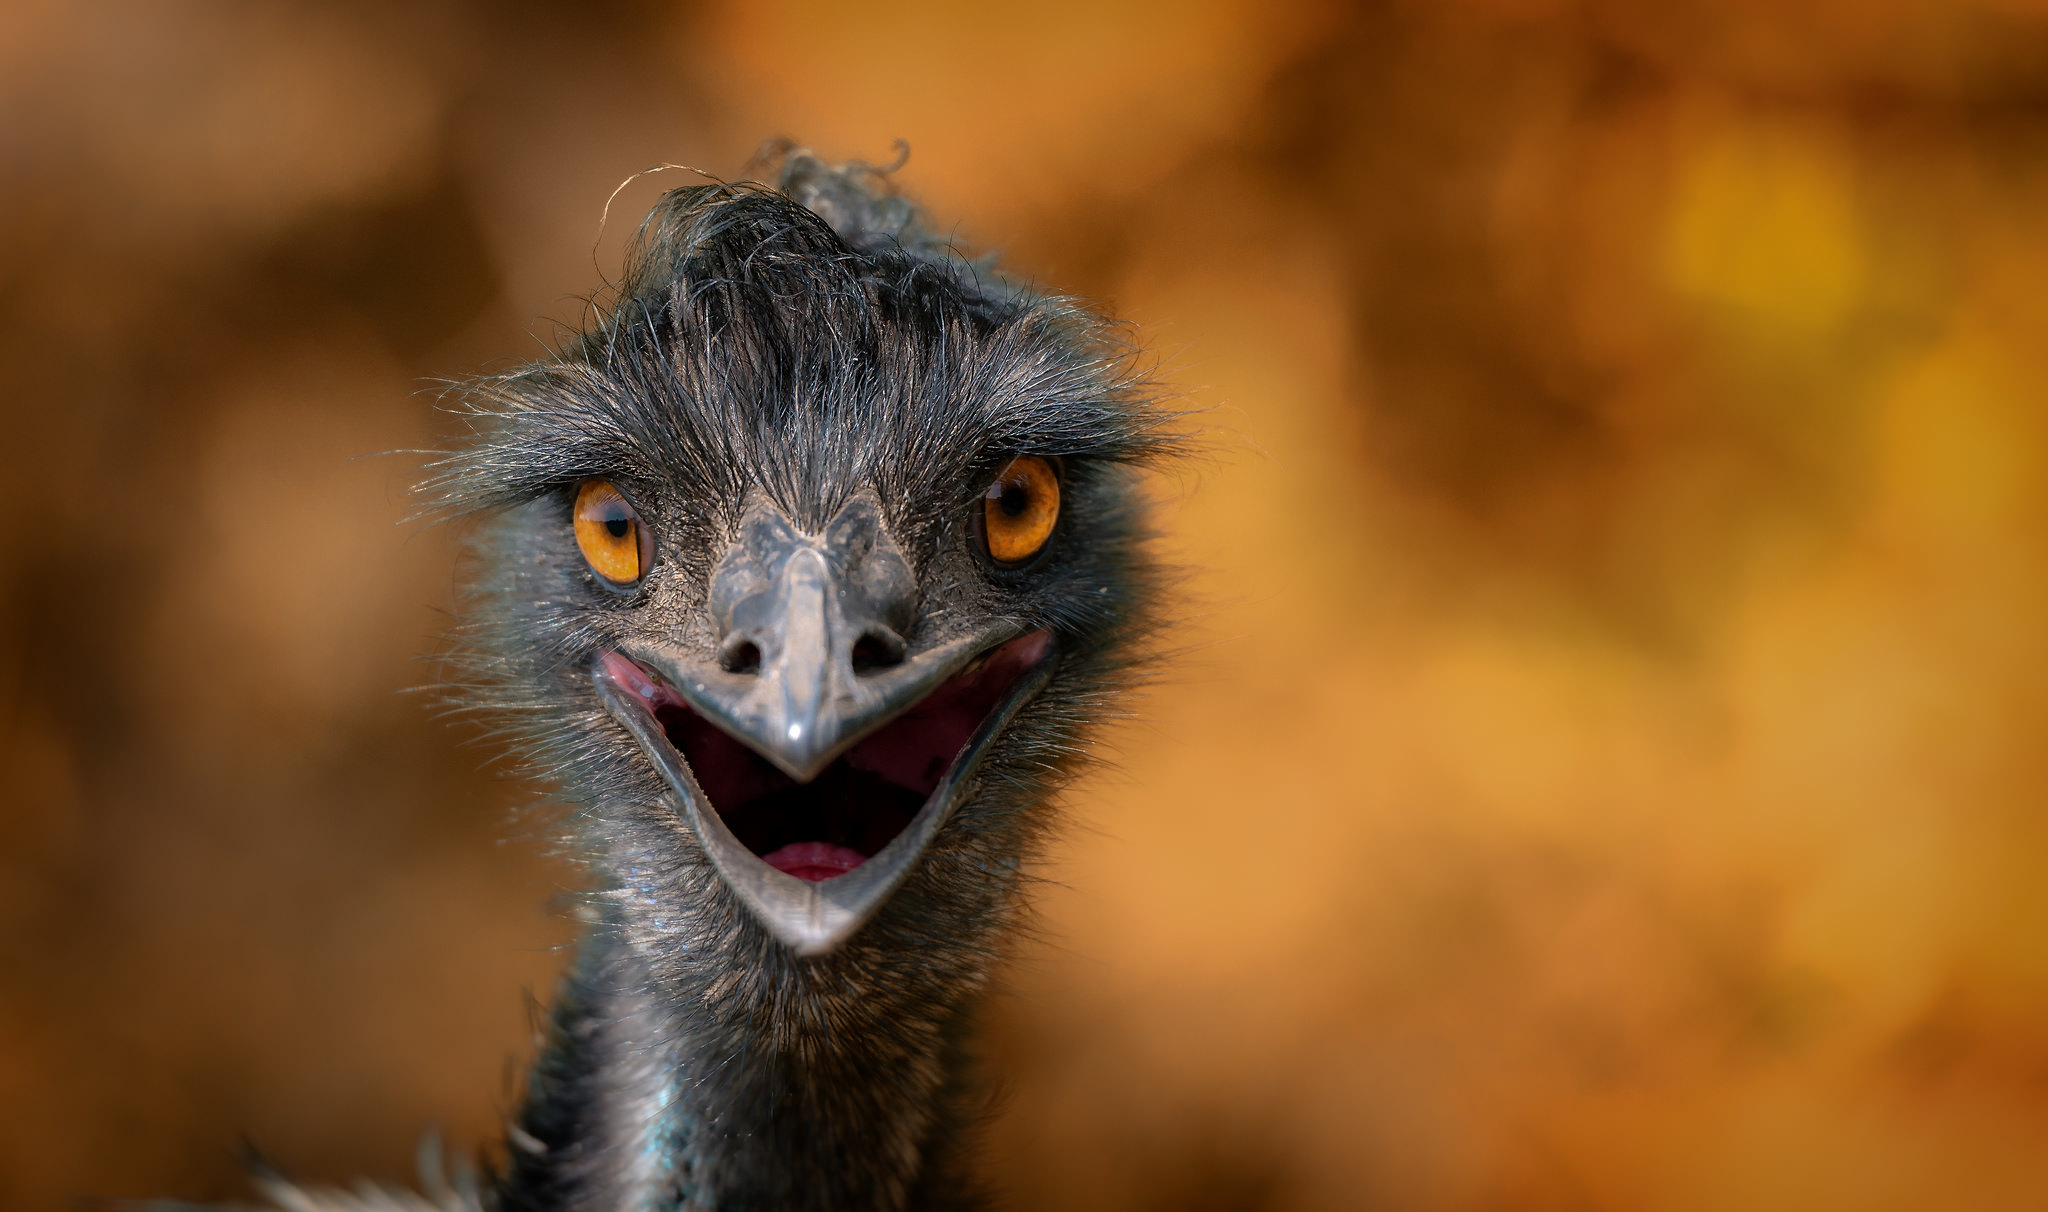 Wallpaper bird Ostriches blurred background Head Closeup Staring Animals Birds ostrich Bokeh Glance animal